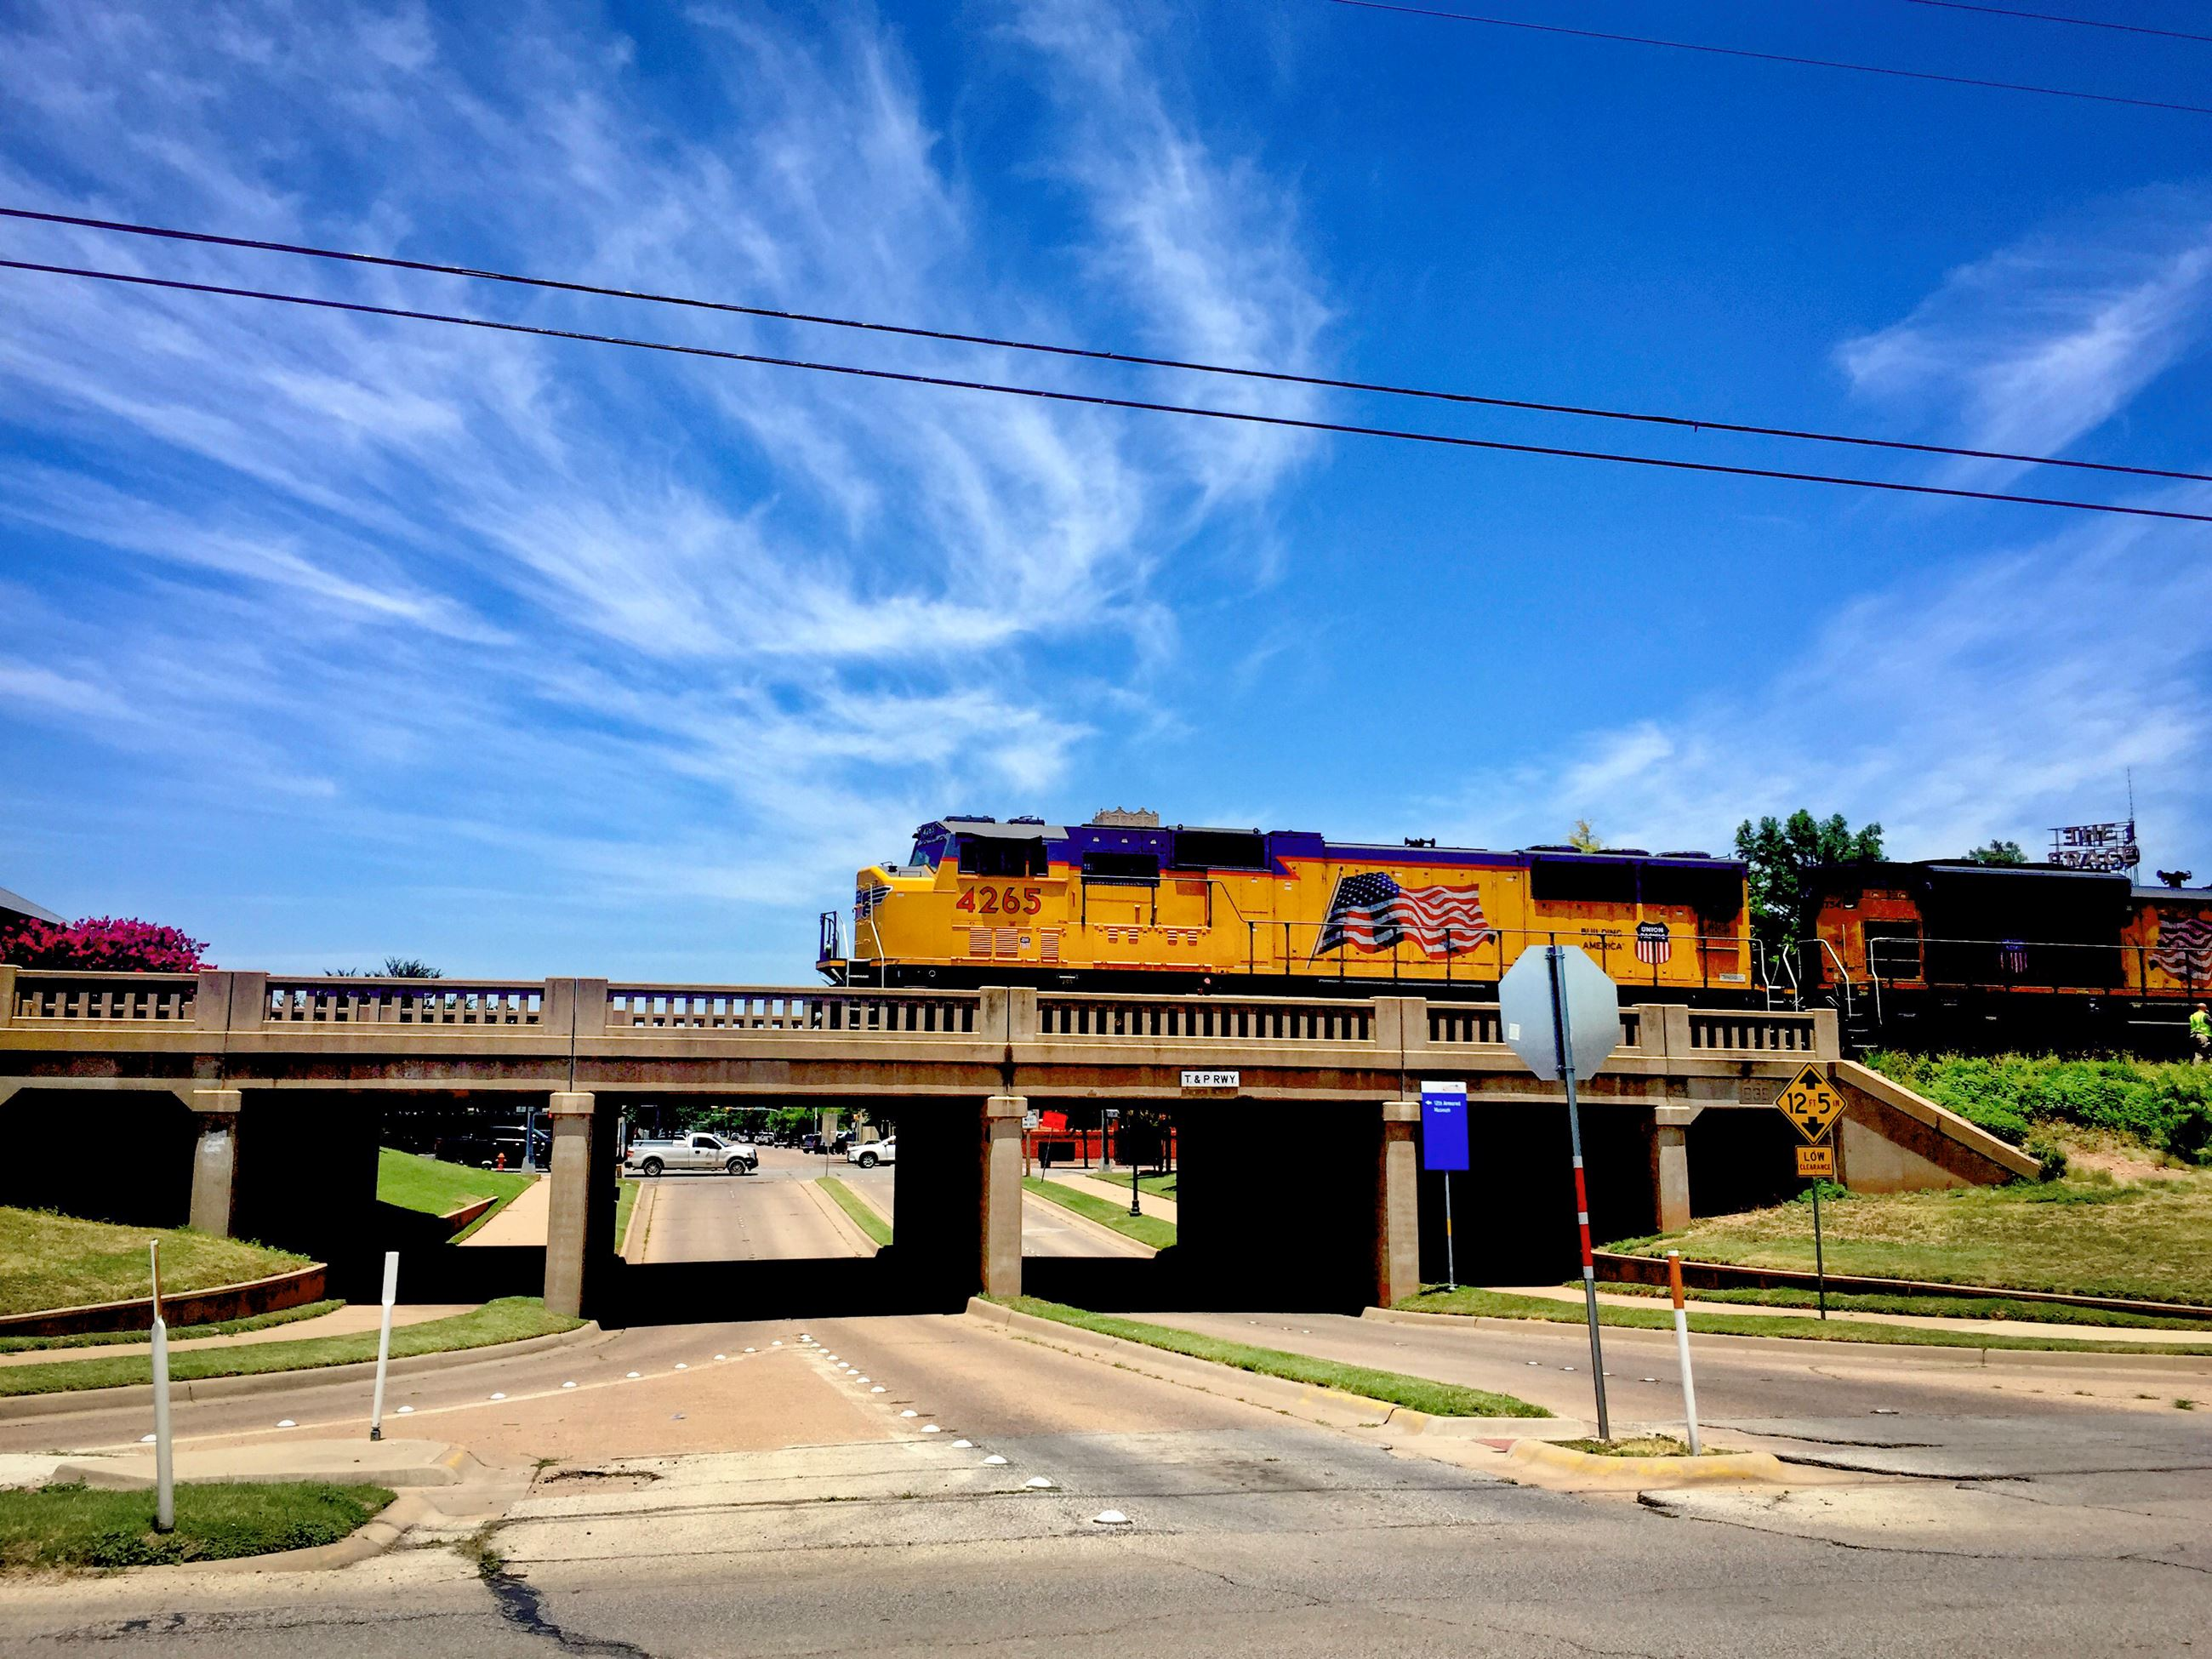 A Union Pacific train passes over T&P Lane near downtown Abilene